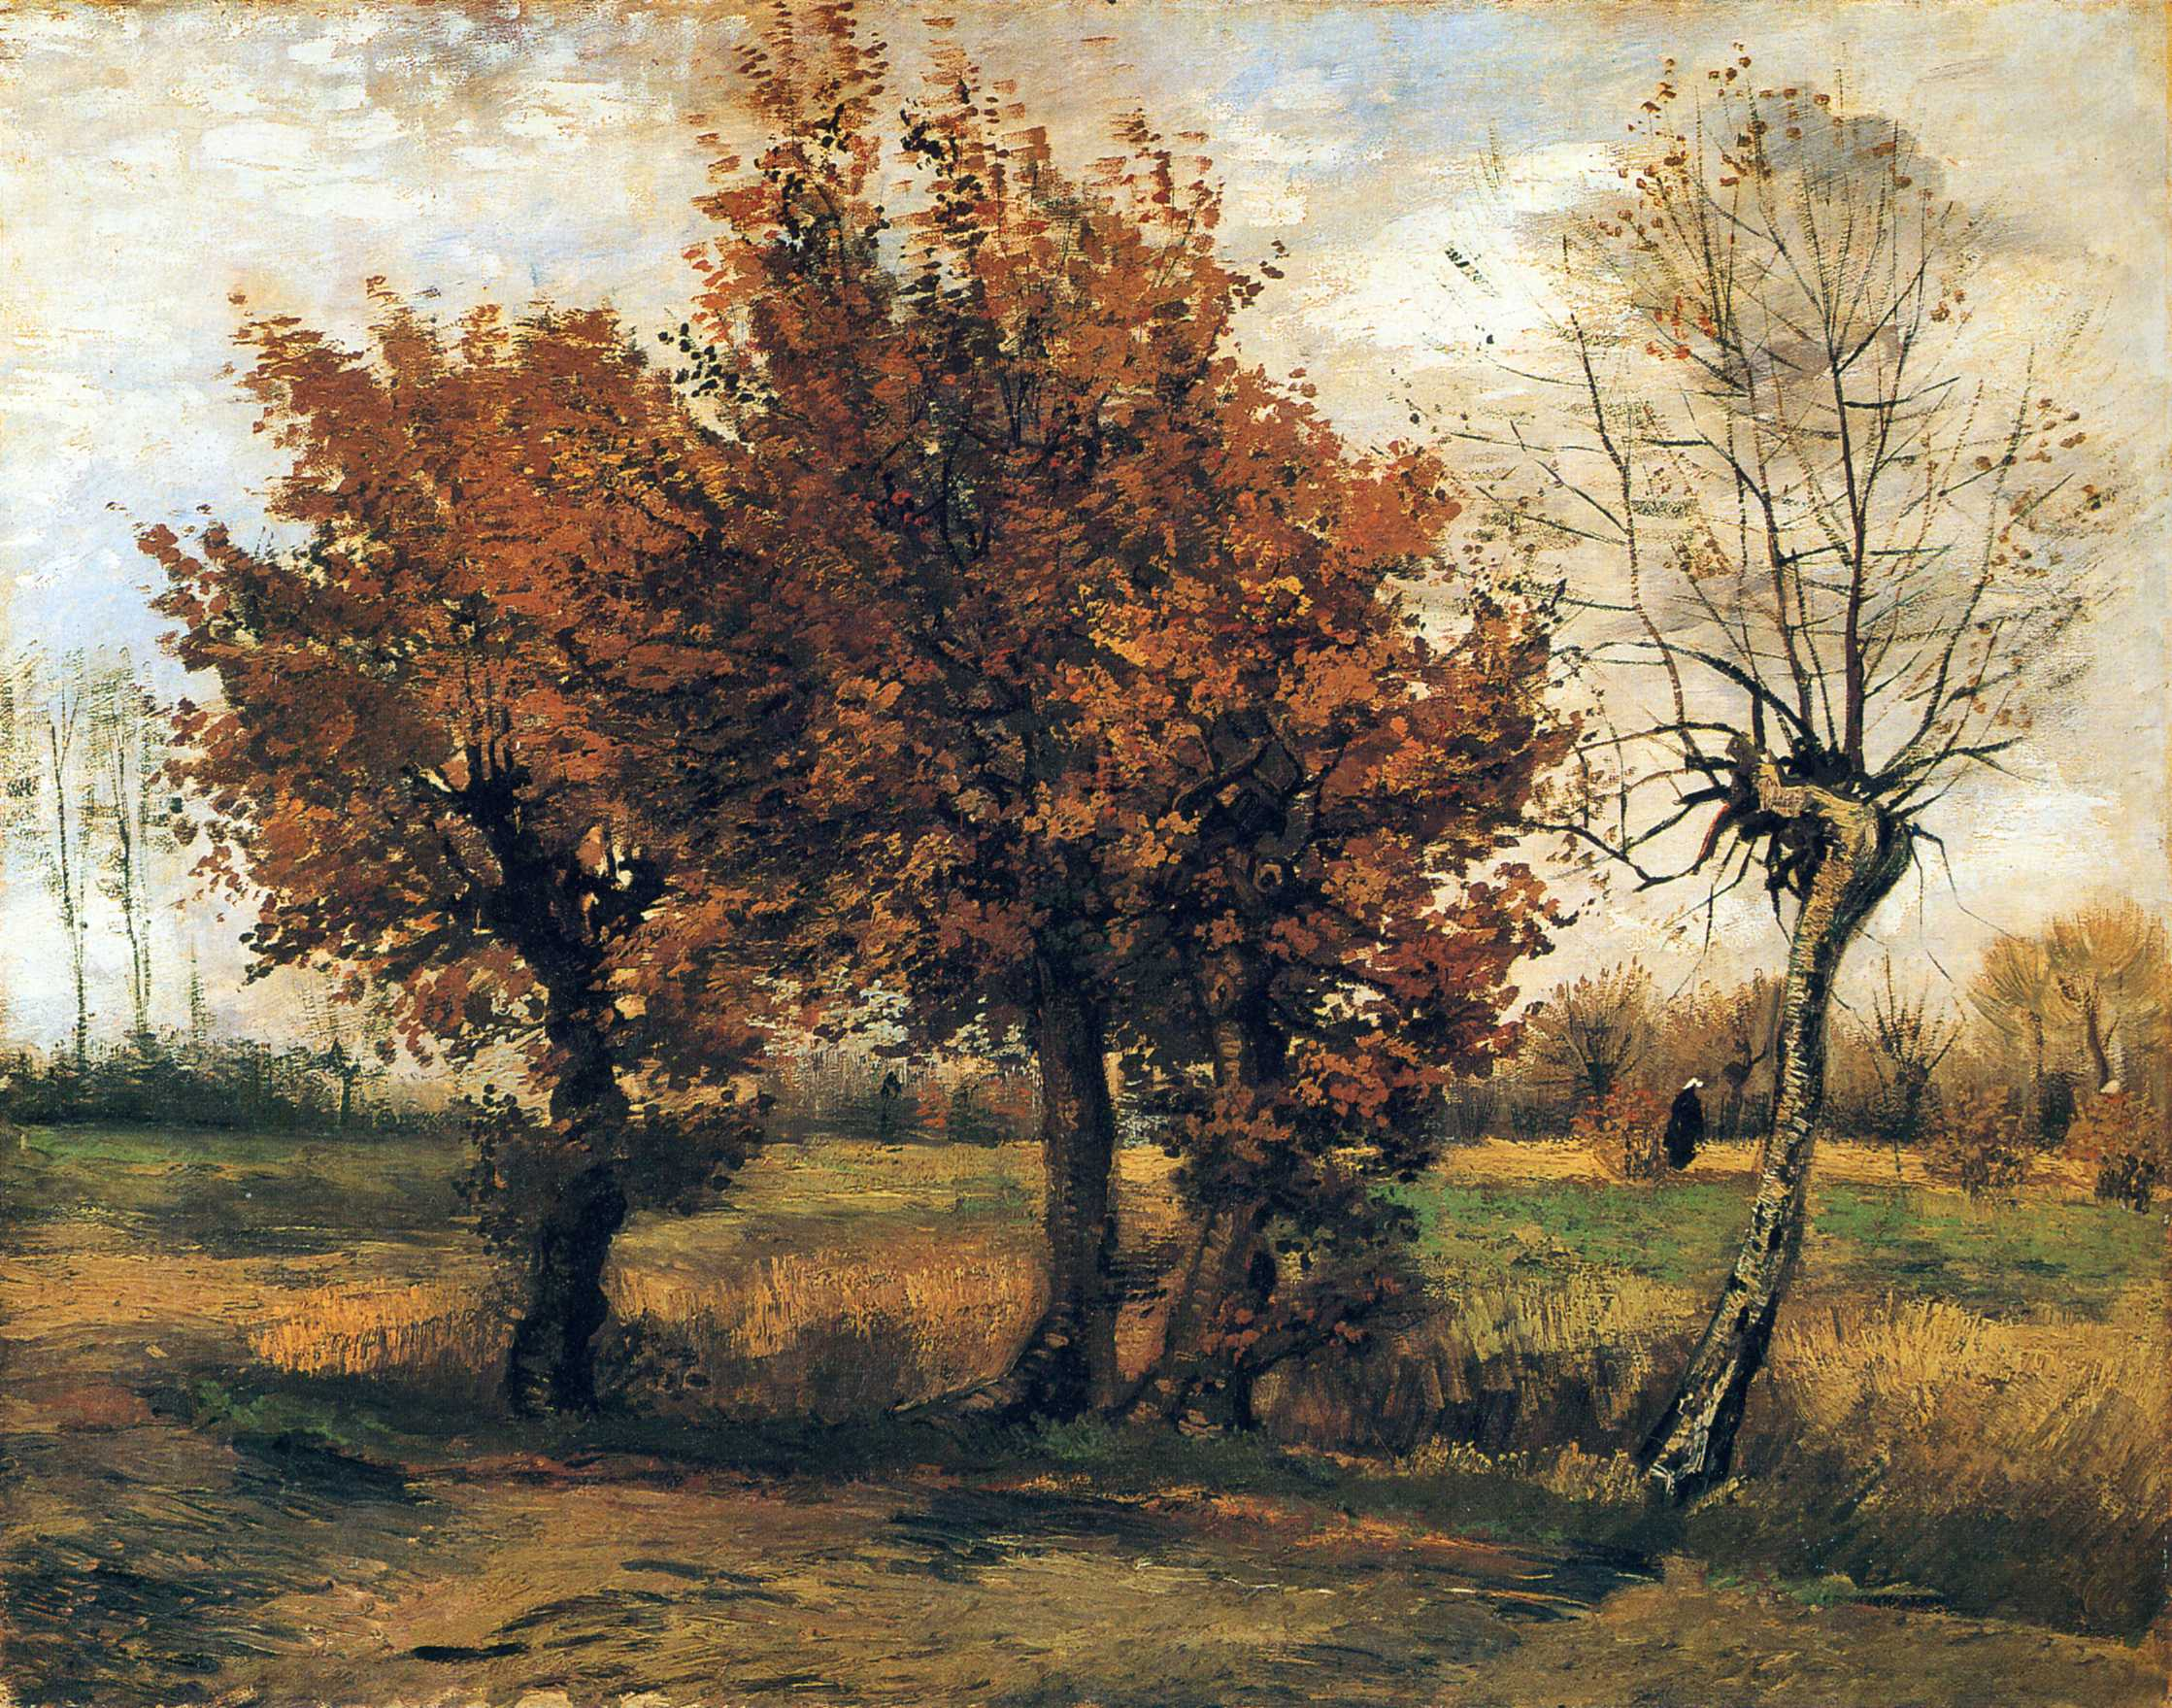 Autumn Landscape Drawing The Original is in The Kröller